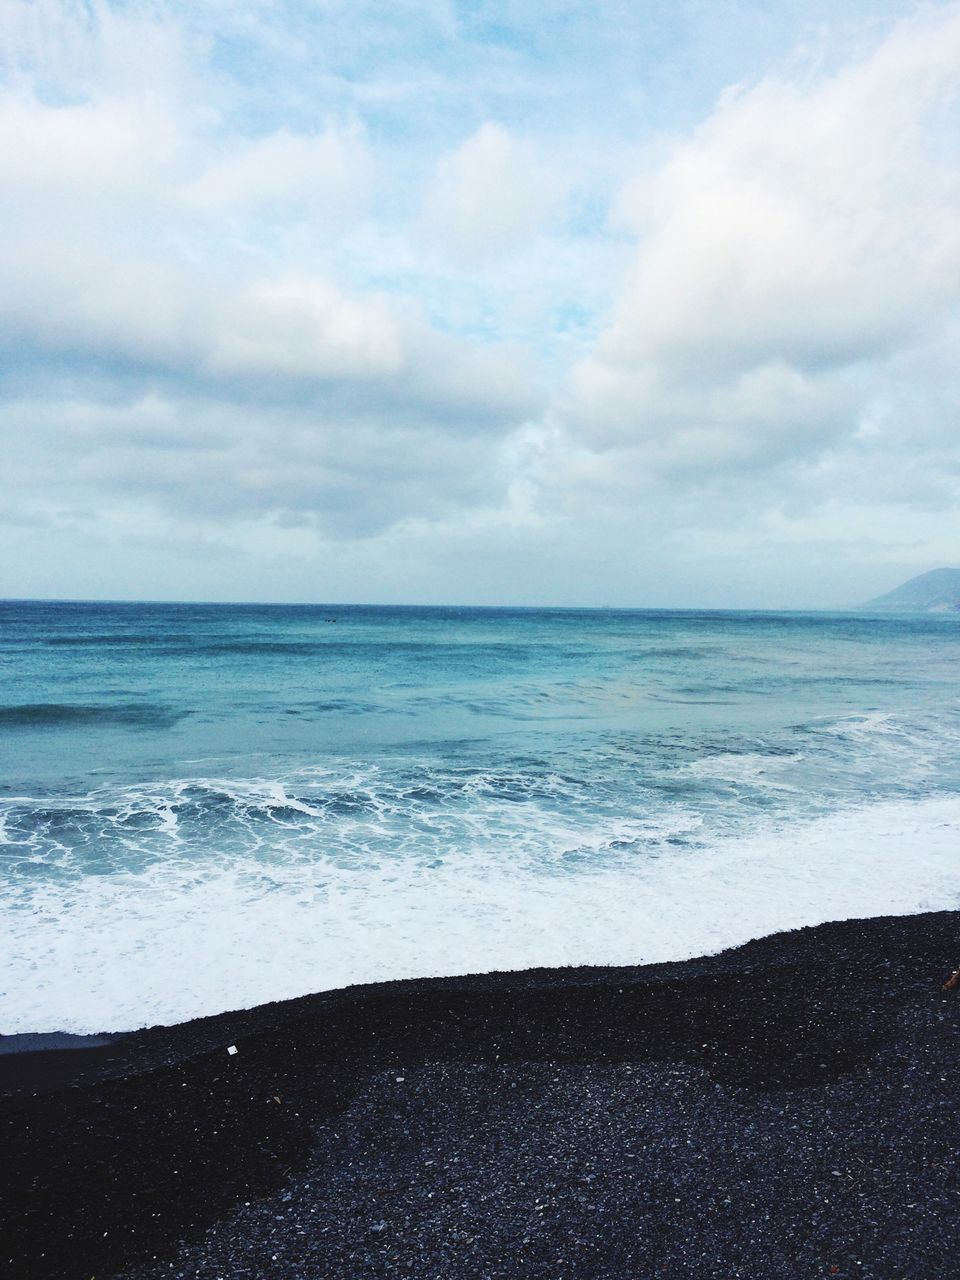 sea, horizon over water, water, beauty in nature, sky, nature, beach, scenics, tranquil scene, tranquility, sand, cloud - sky, no people, day, outdoors, wave